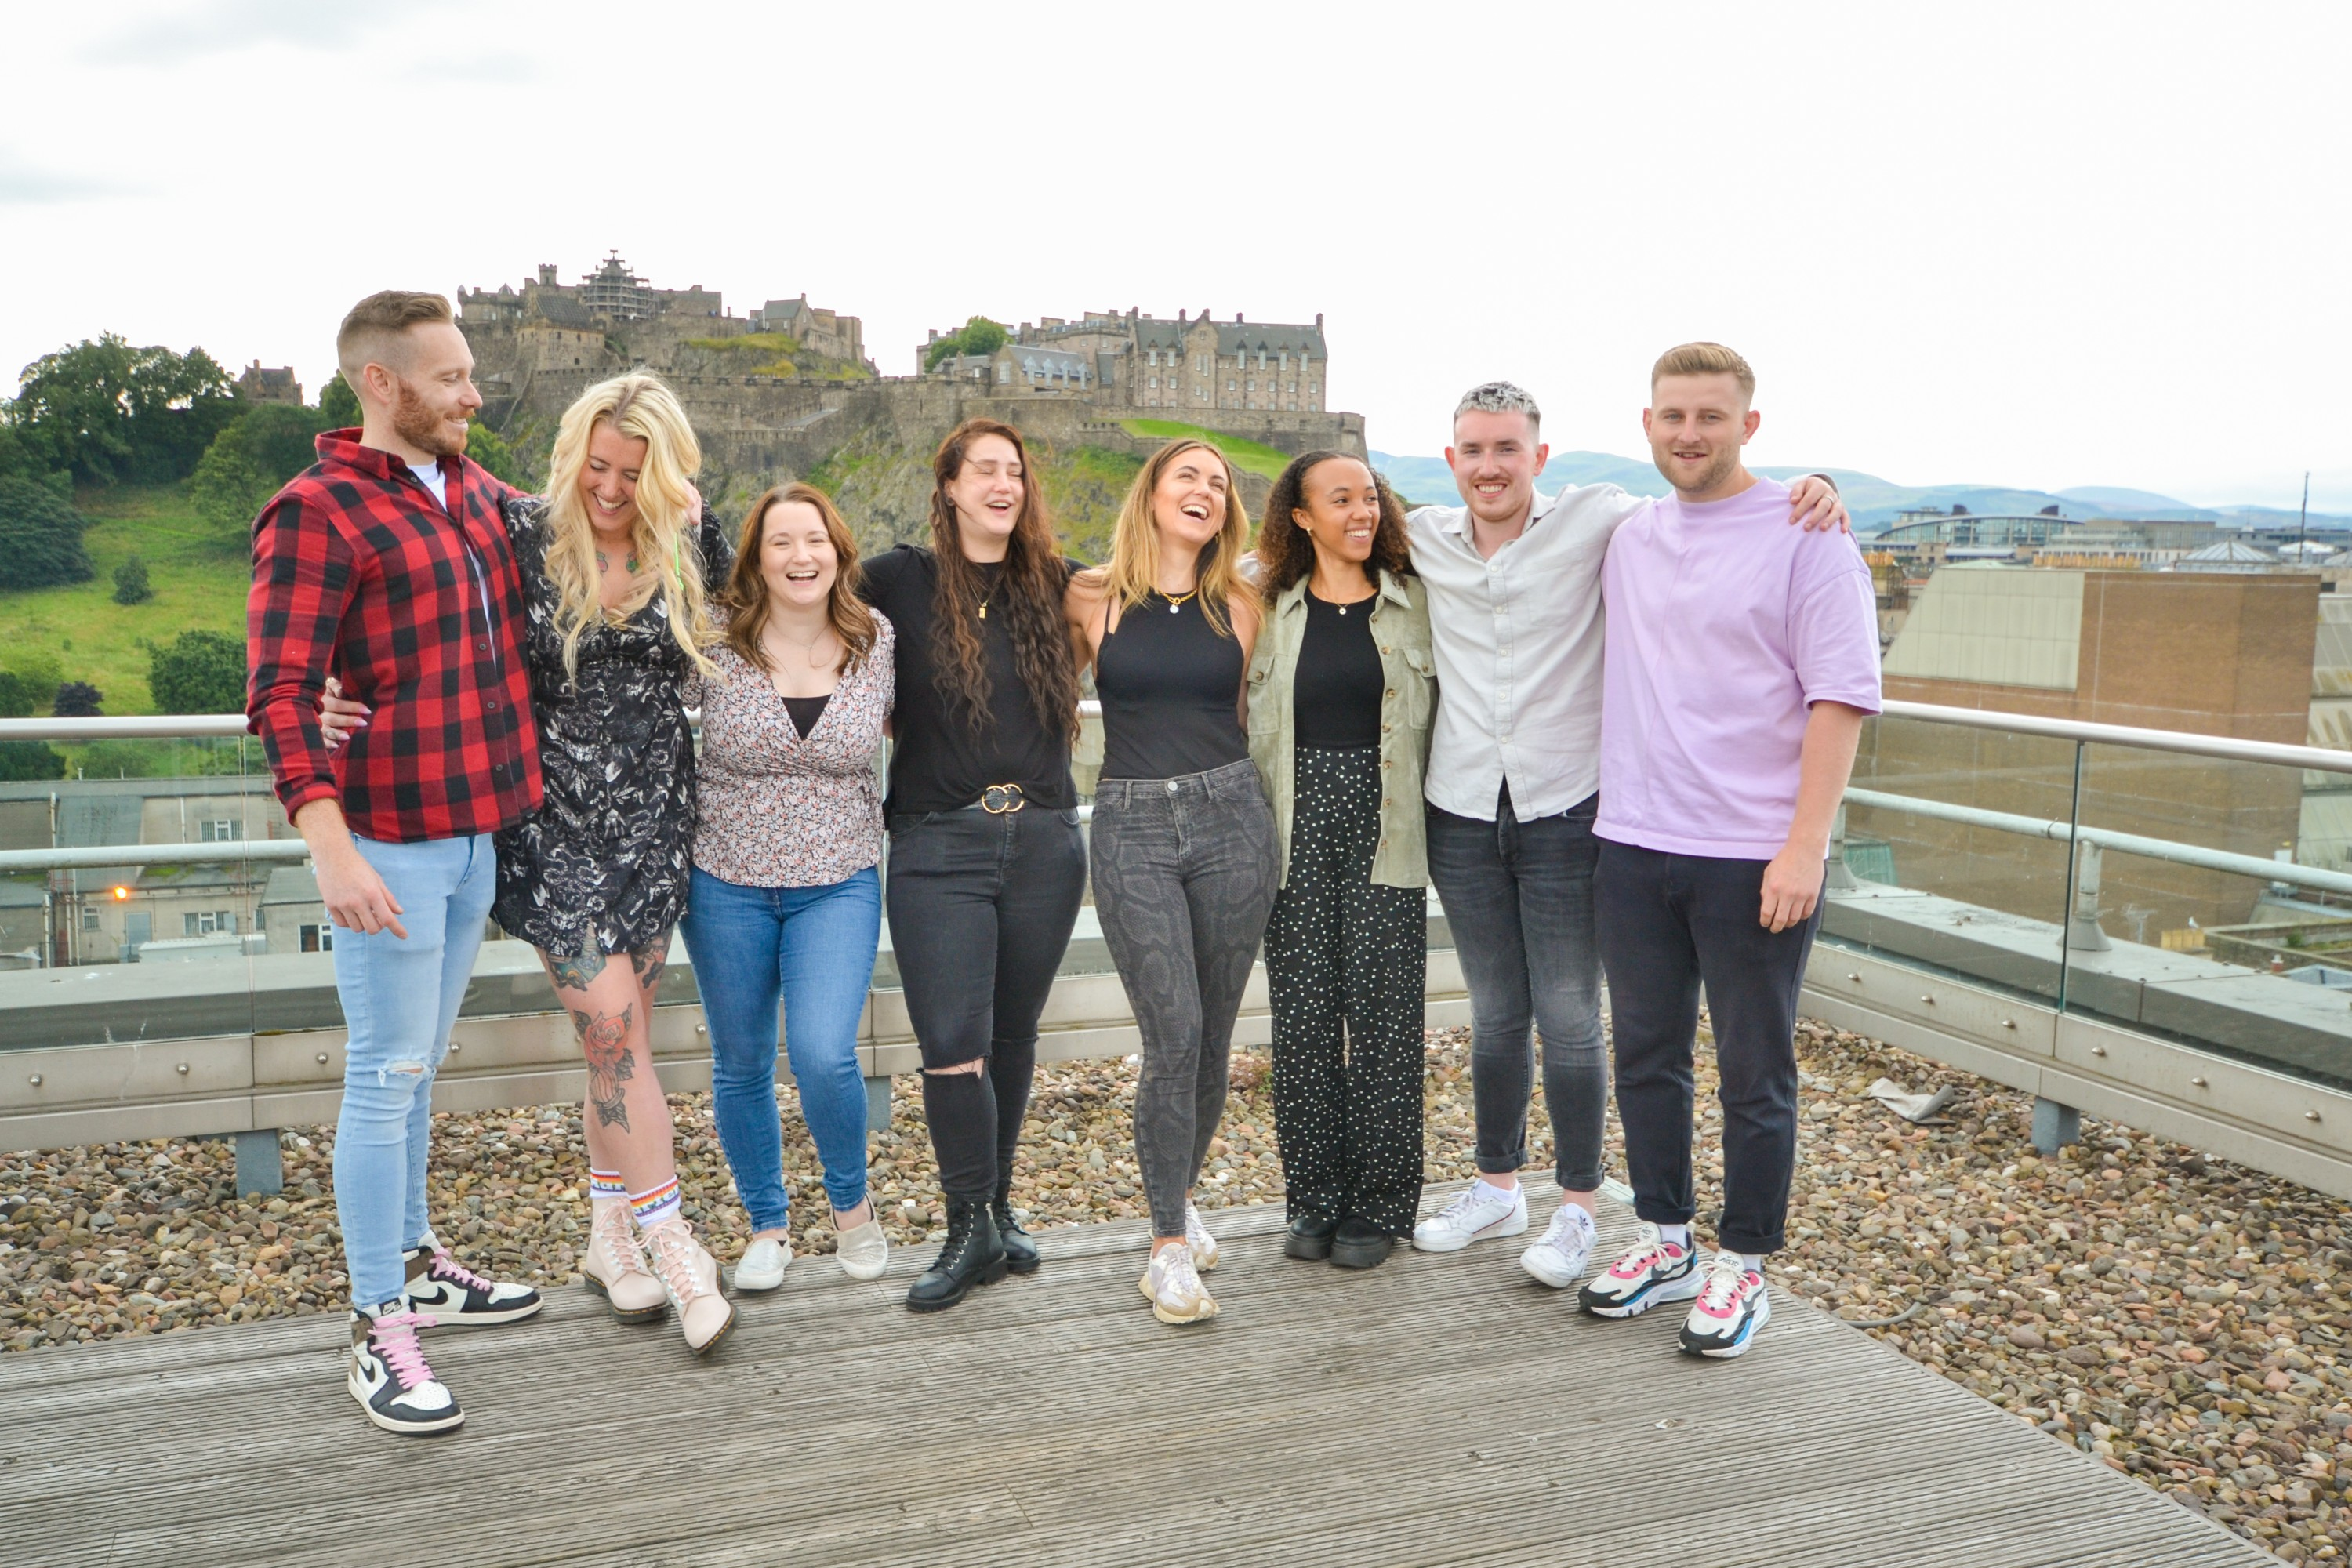 HappyCo. team members pictured smiling with Edinburgh castle in the background.